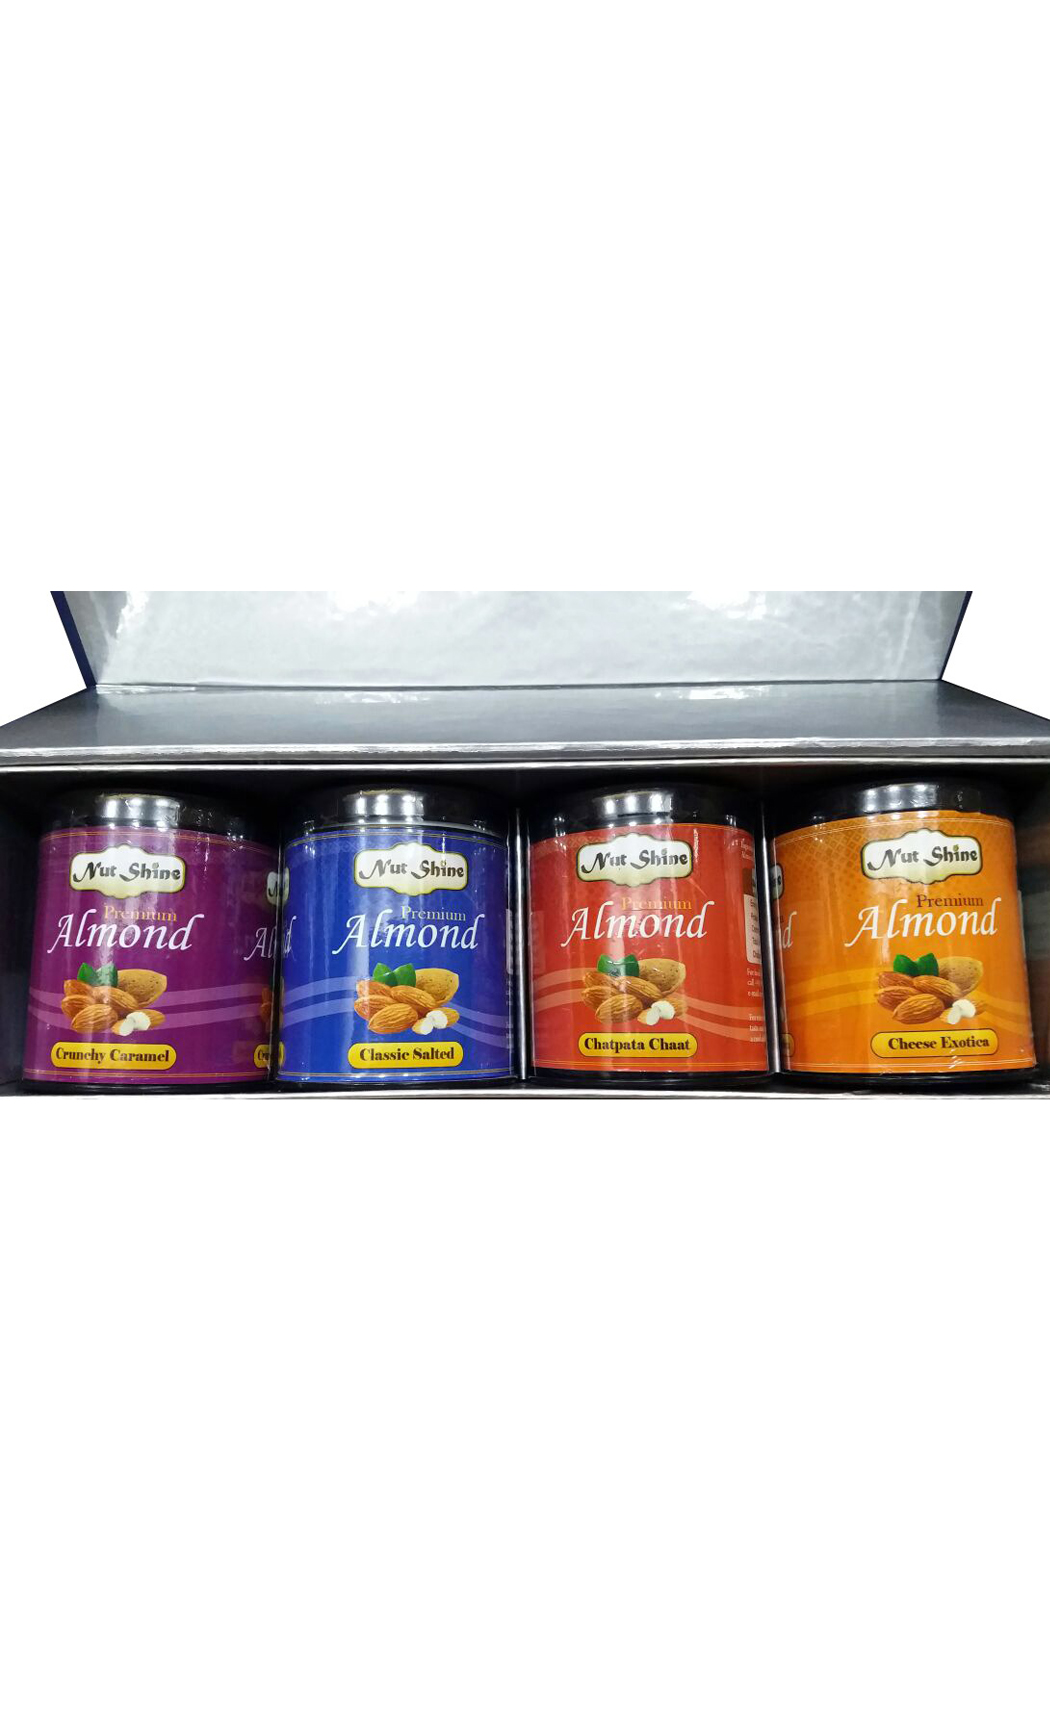 Flavoured Almond Gift Box Set of 4- 90gm Boxes - Buy Online